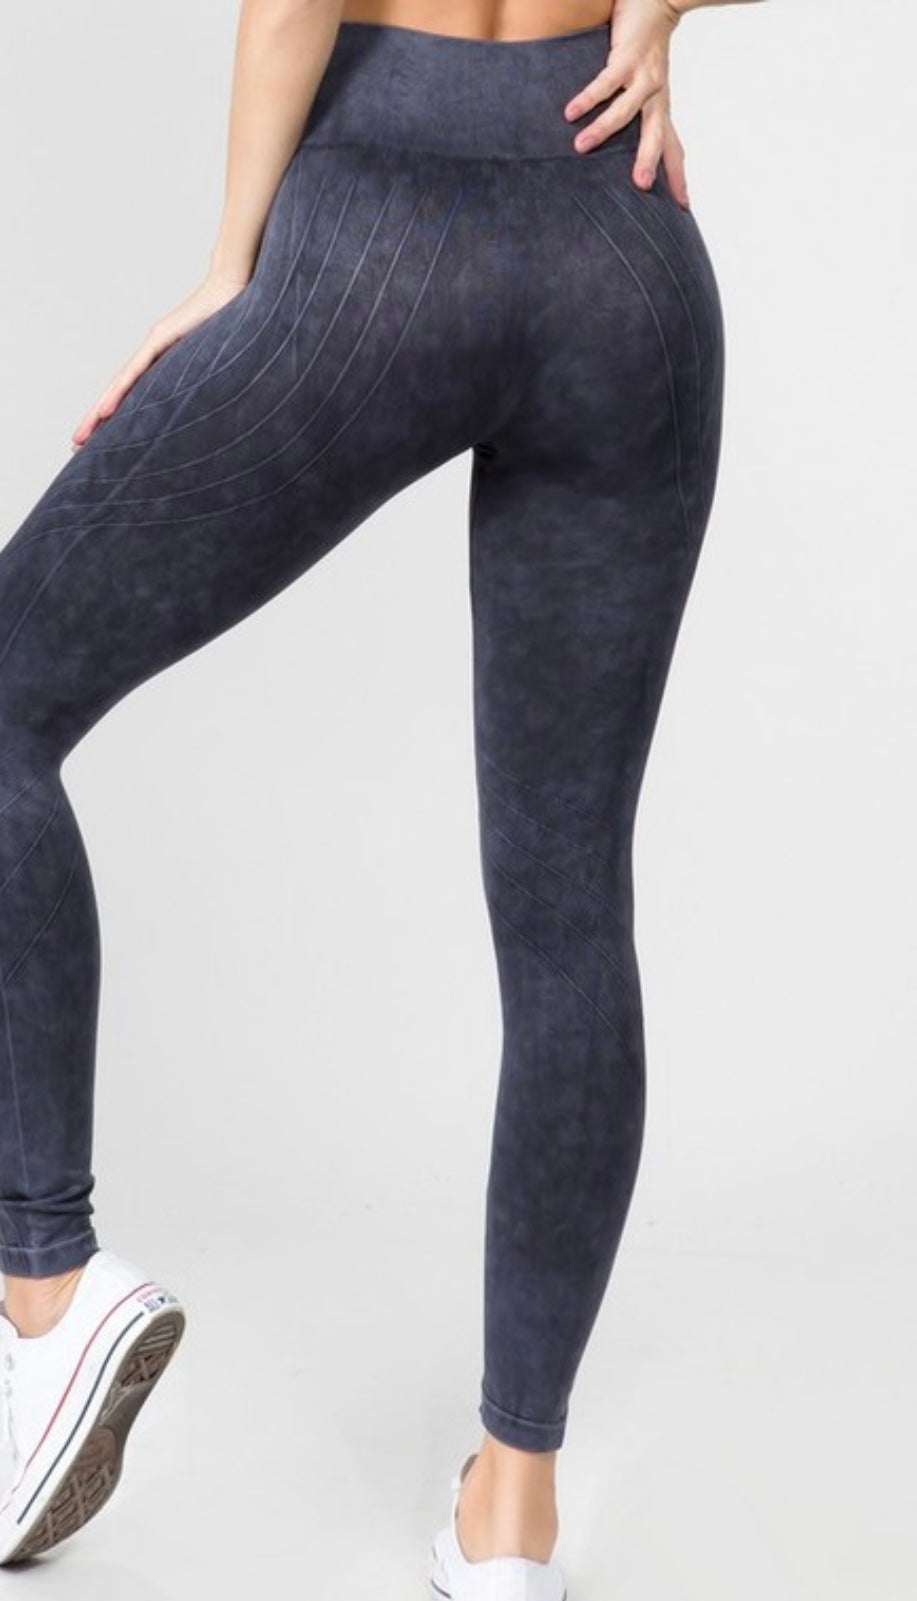 Vintage Texture Leggings (stone wash black)